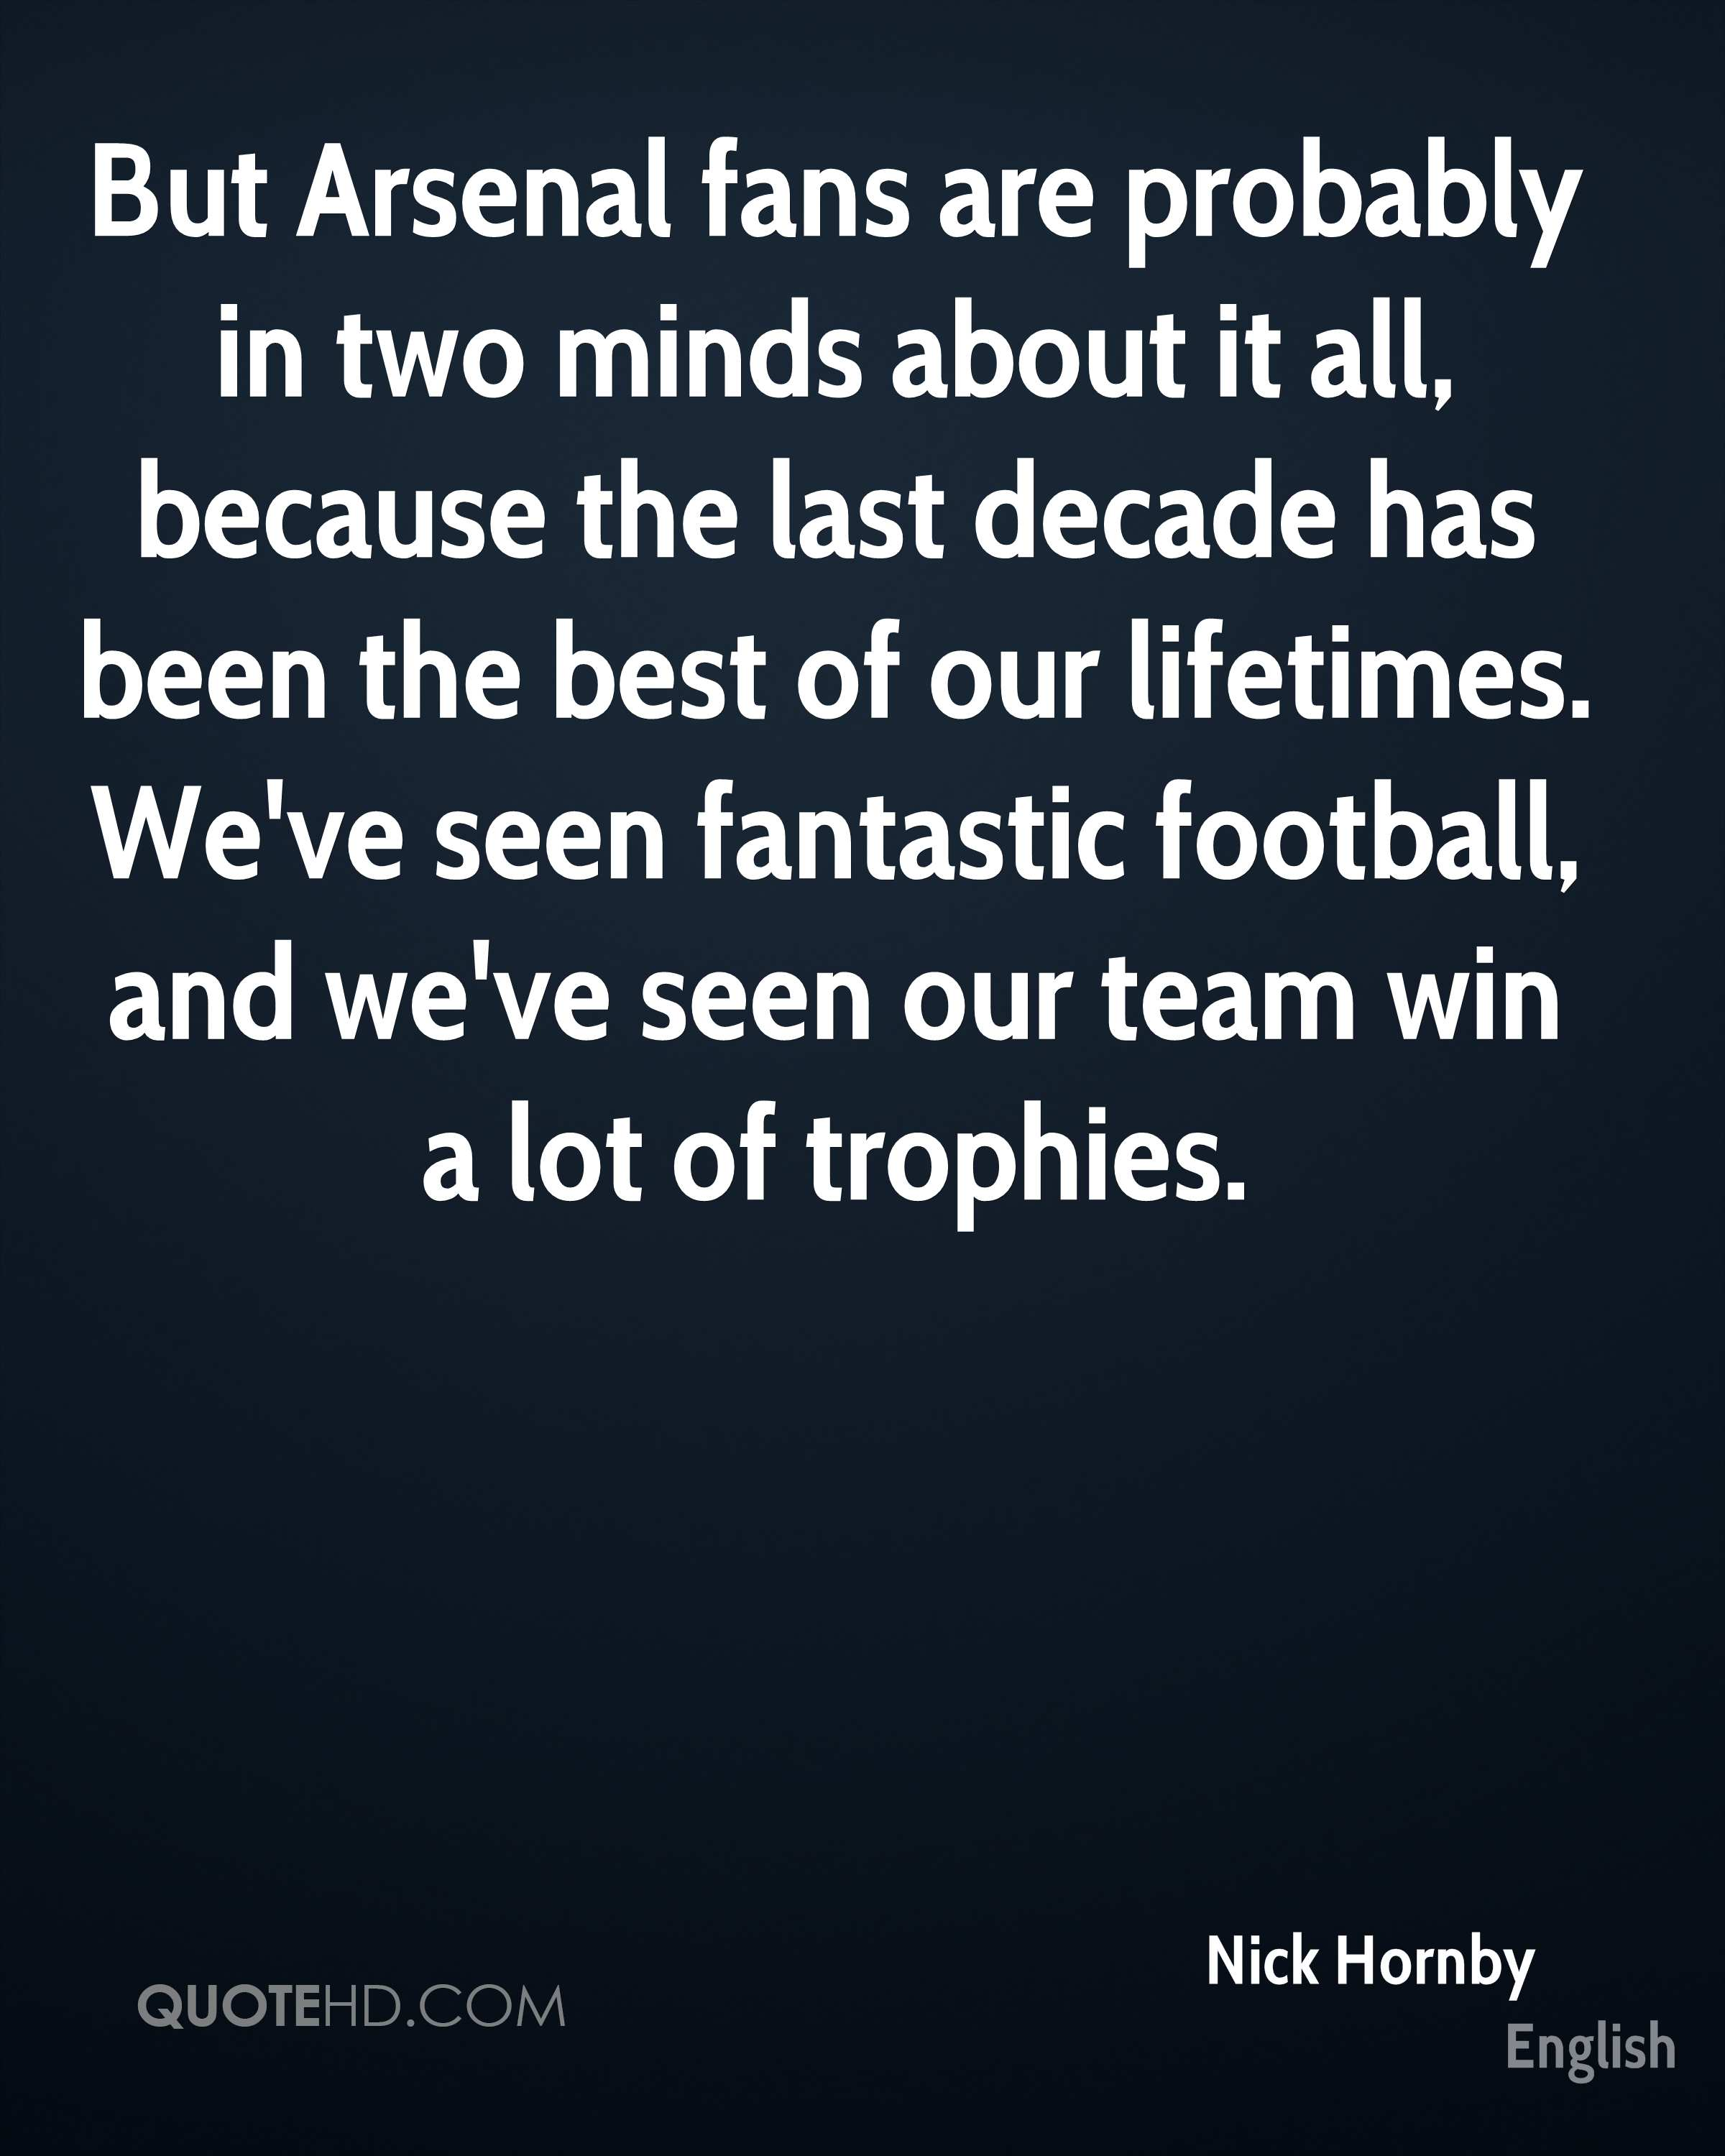 But Arsenal fans are probably in two minds about it all, because the last decade has been the best of our lifetimes. We've seen fantastic football, and we've seen our team win a lot of trophies.